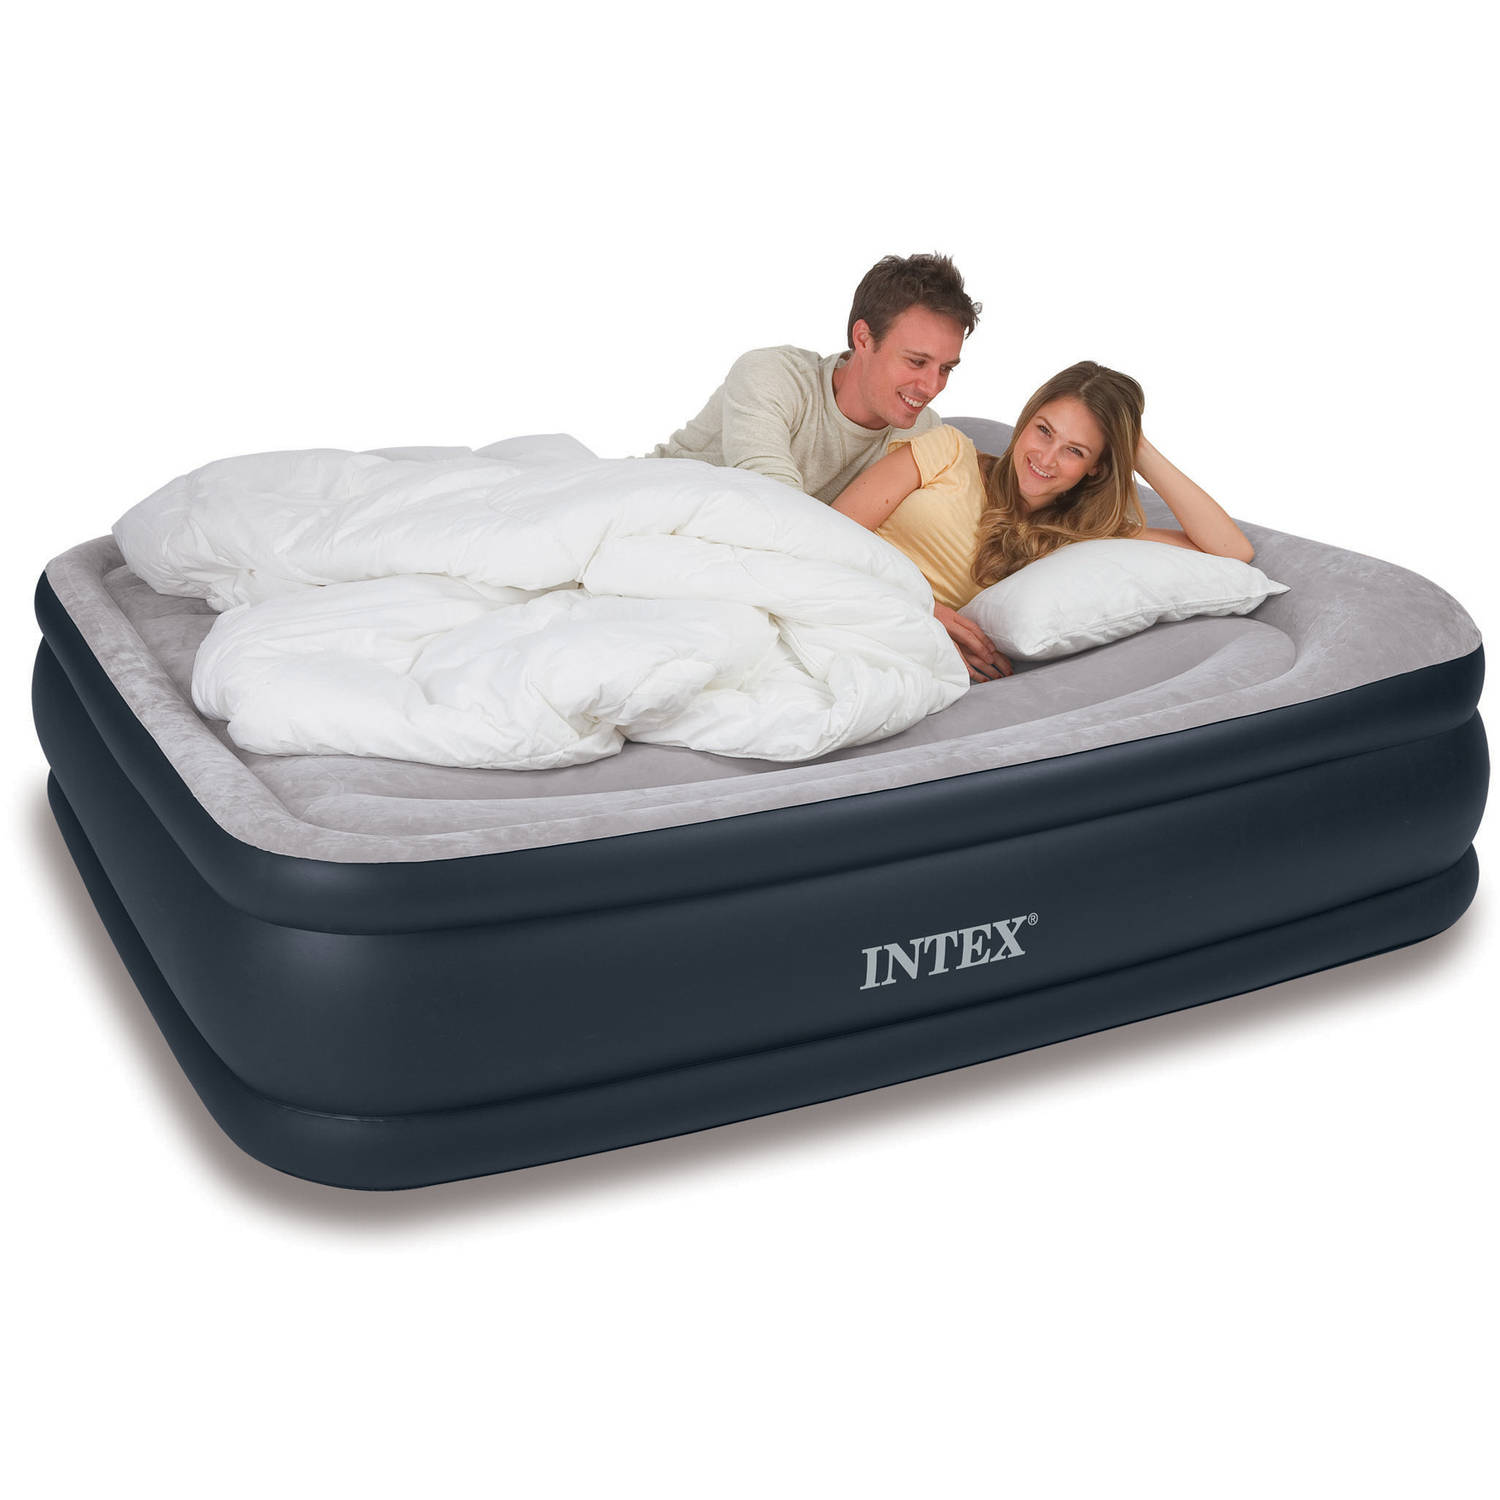 intex deluxe raised pillow rest airbed mattress with builtin pump twin full